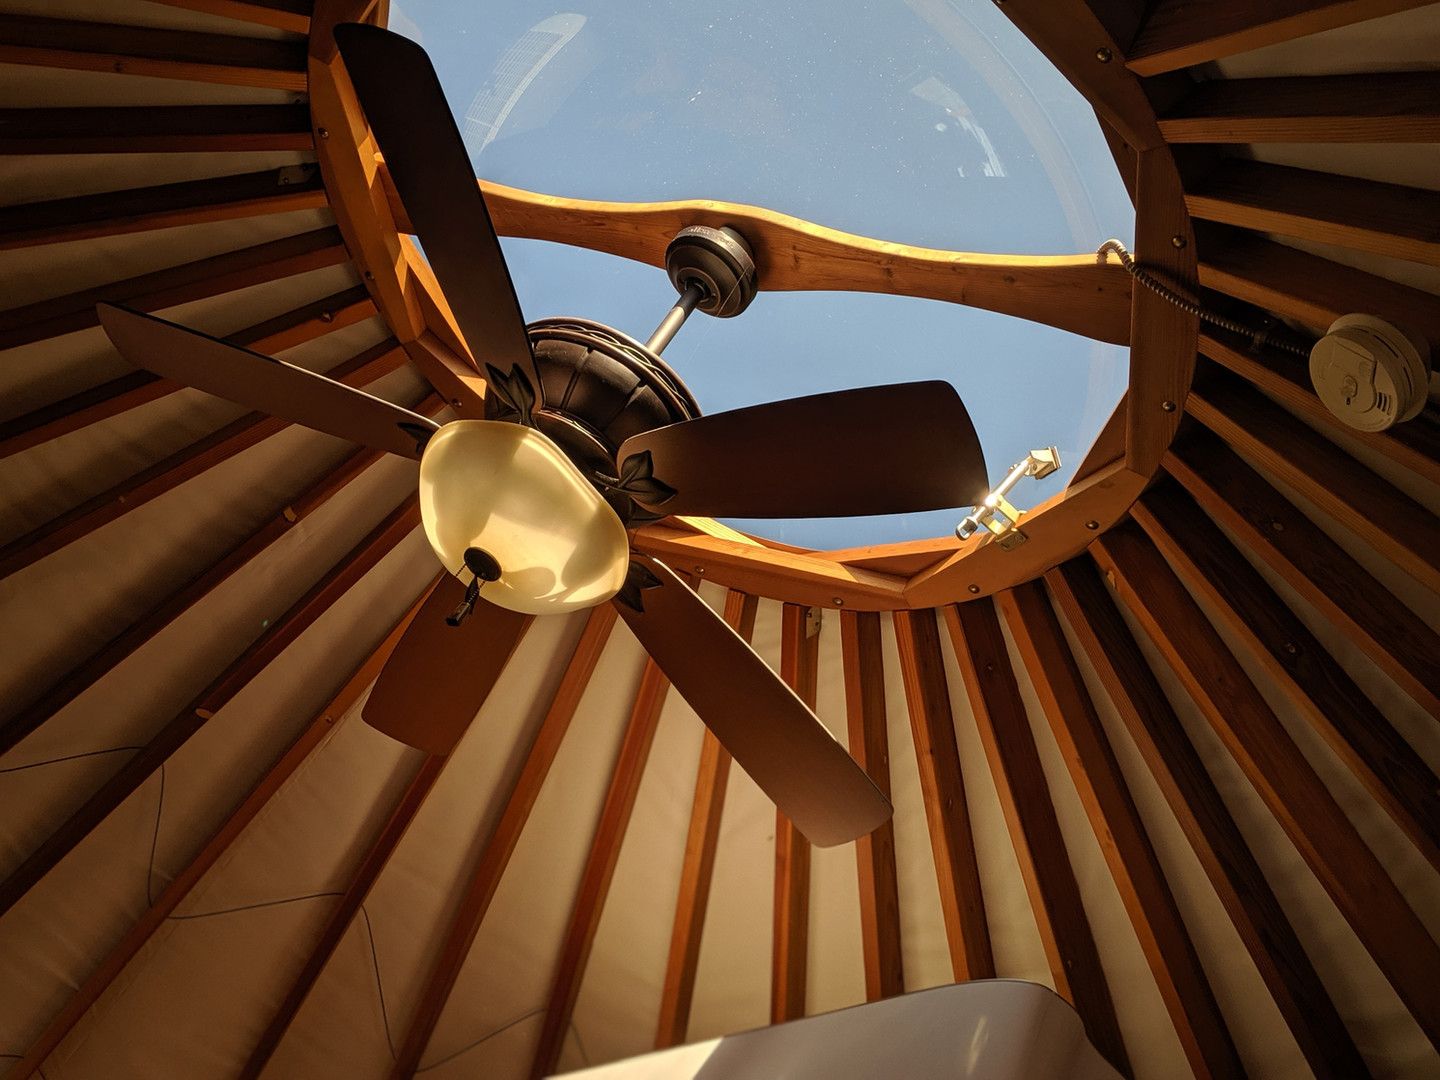 The overhead dome allows for stargazing at night from the comfort of  your bed.